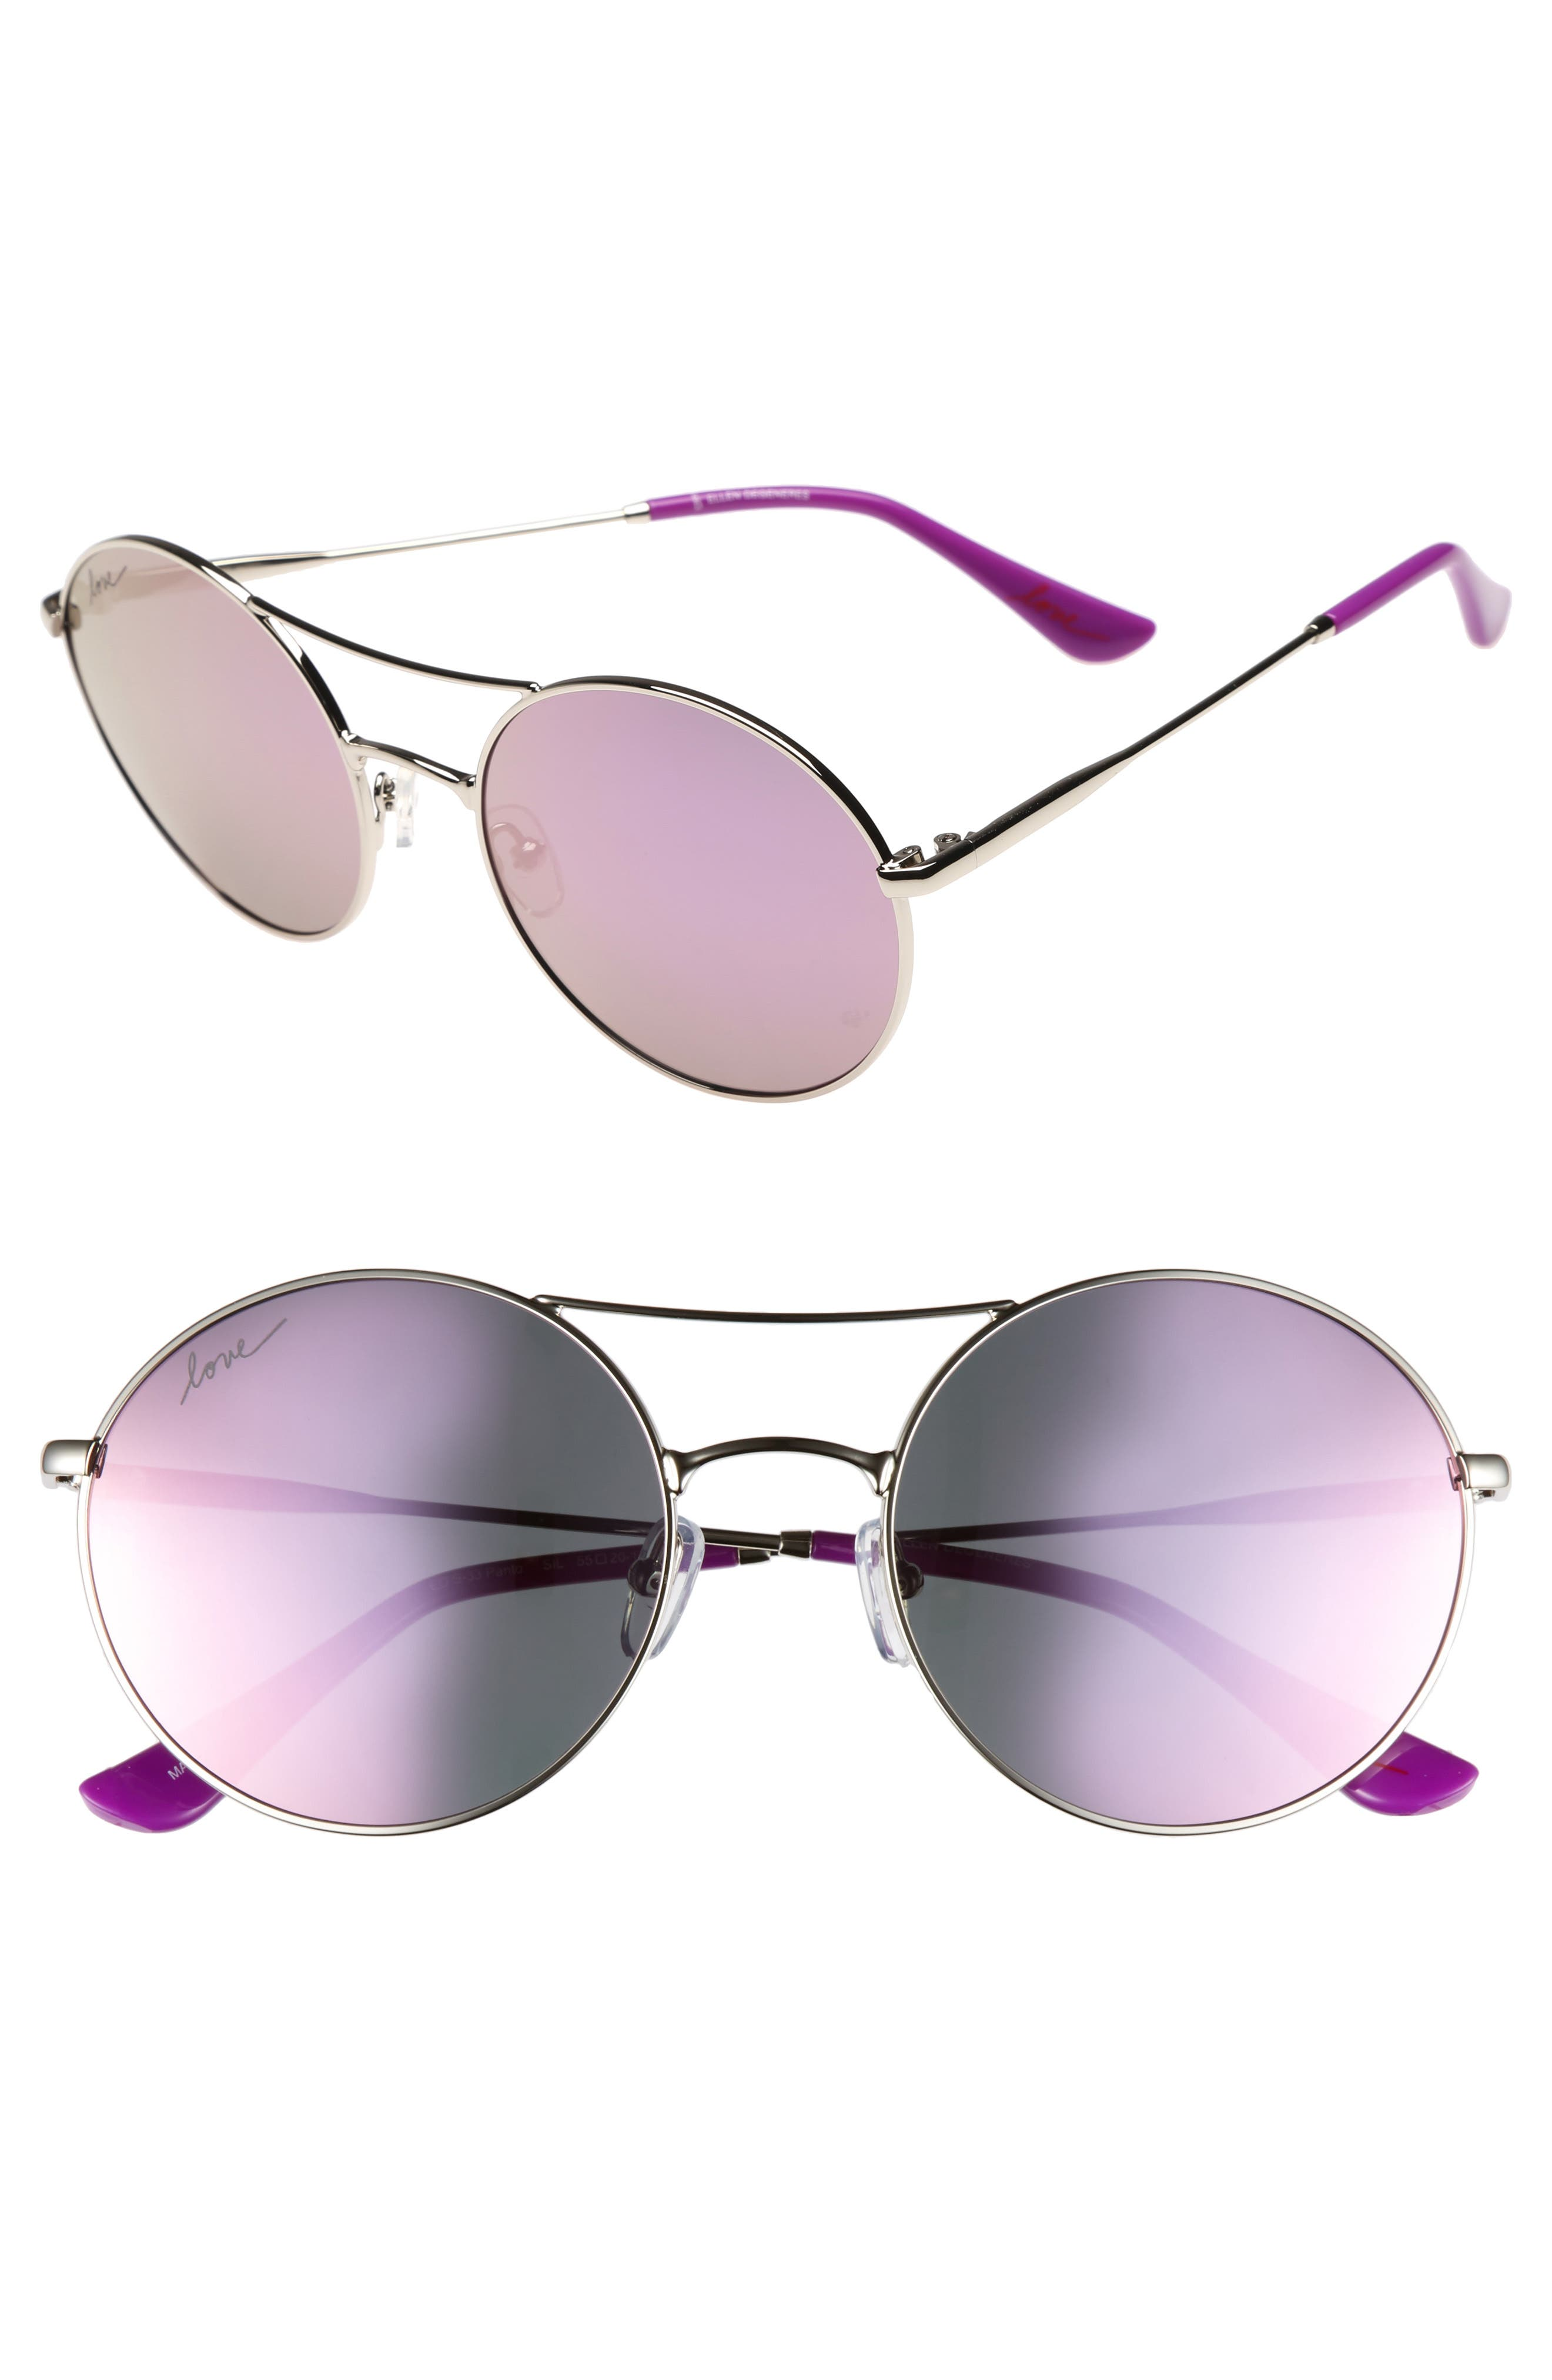 55mm Round Sunglasses,                             Main thumbnail 1, color,                             SILVER